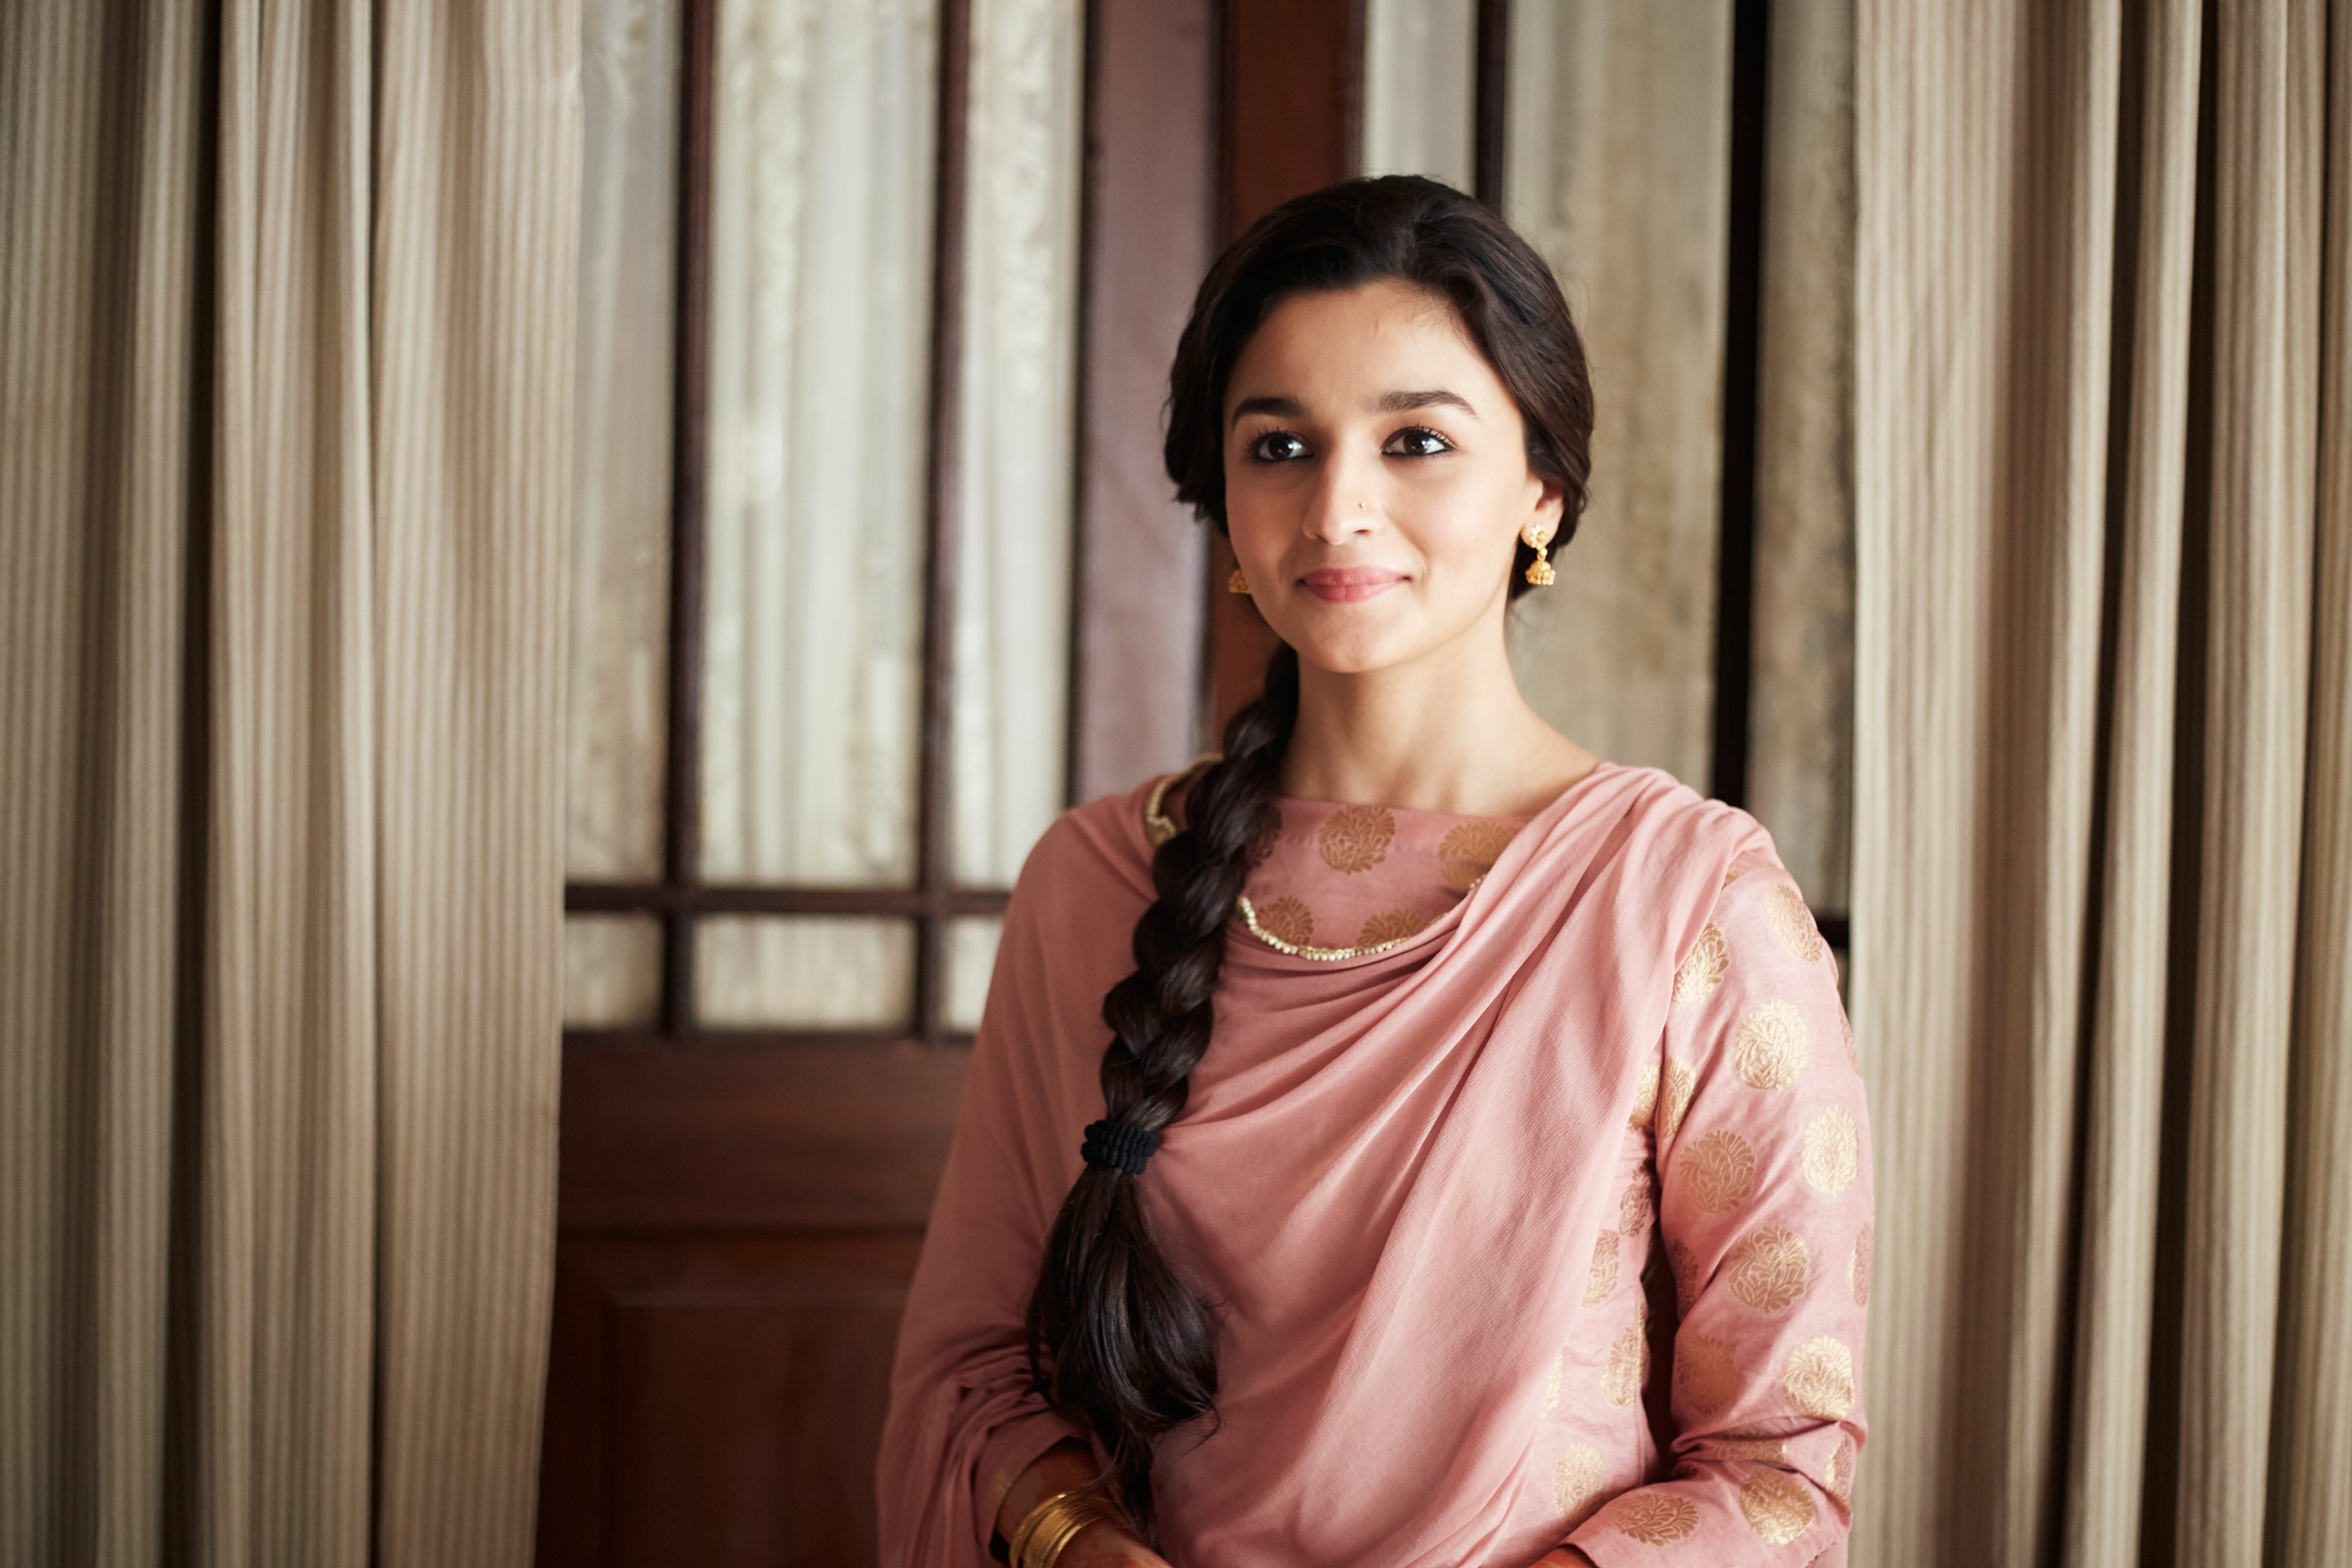 The protagonist Sehmat, played by Alia Bhatt, transforms into an Indian spy on the order of her father.